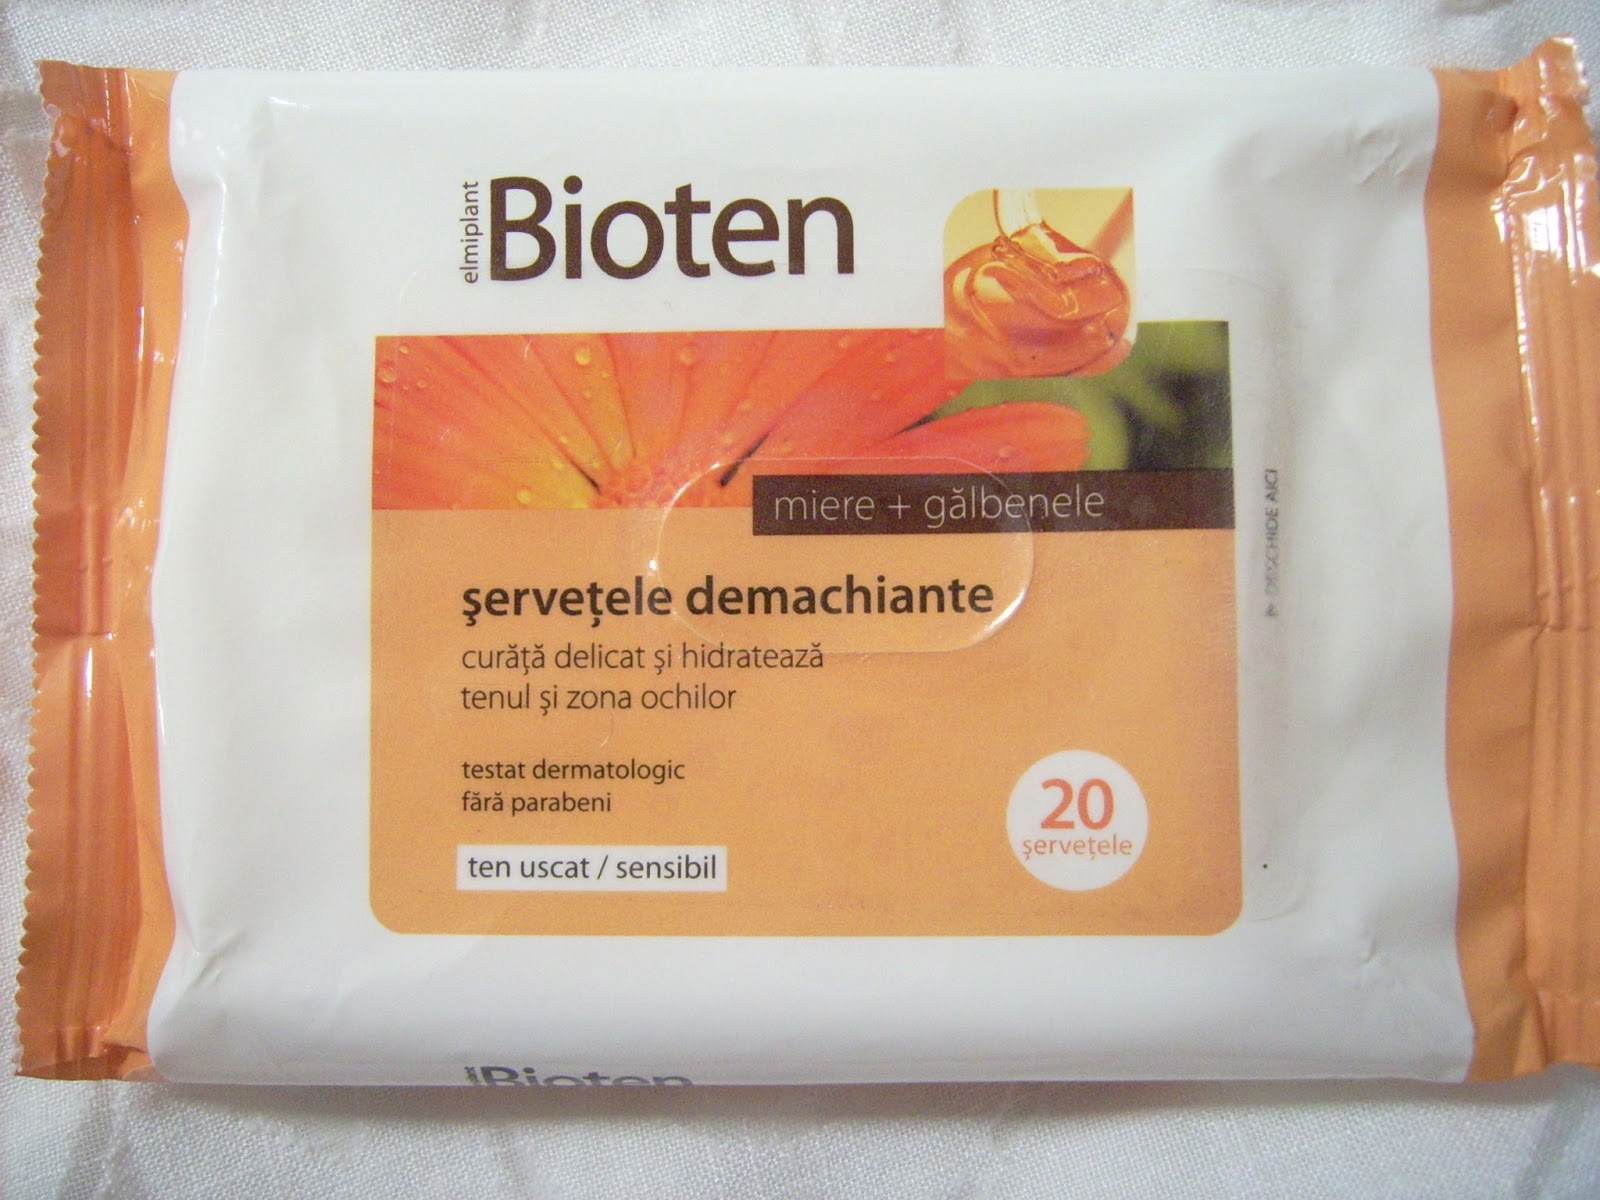 servetele demachiante Bioten, makeup remover wipes bioten